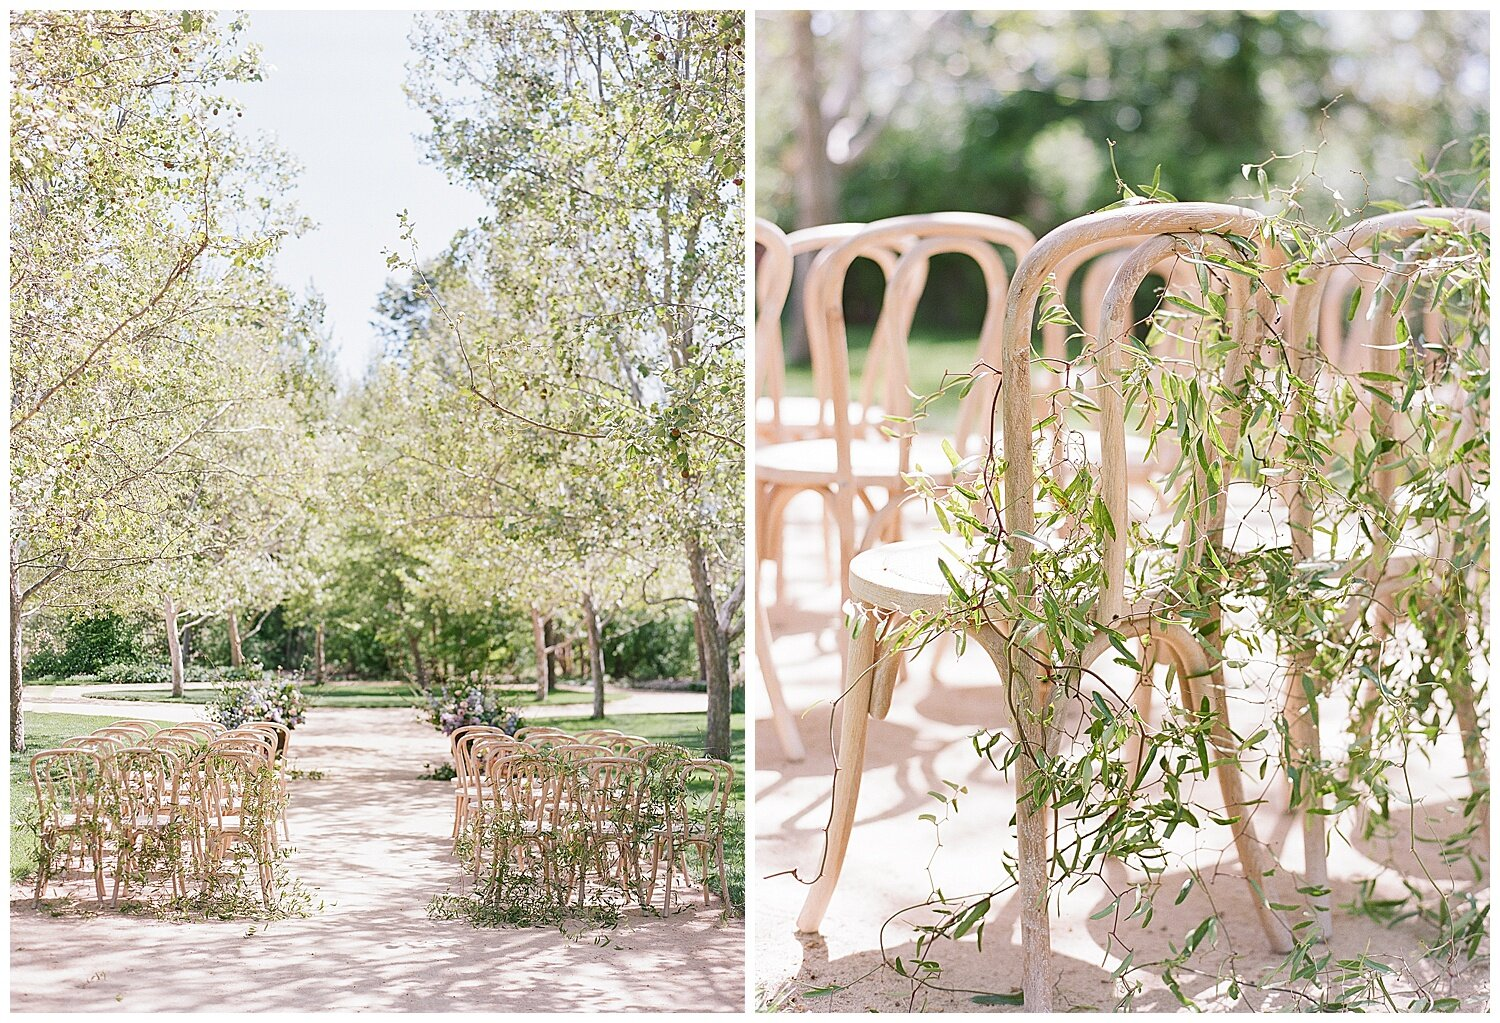 Janine_Licare_Photography_San_Francisco_Kestrel_Park_Santa_Ynez_Sunstone_Villa_Winer_Wedding_Photographer_Meadowood_Napa_Valley_Sonoma_0060.jpg